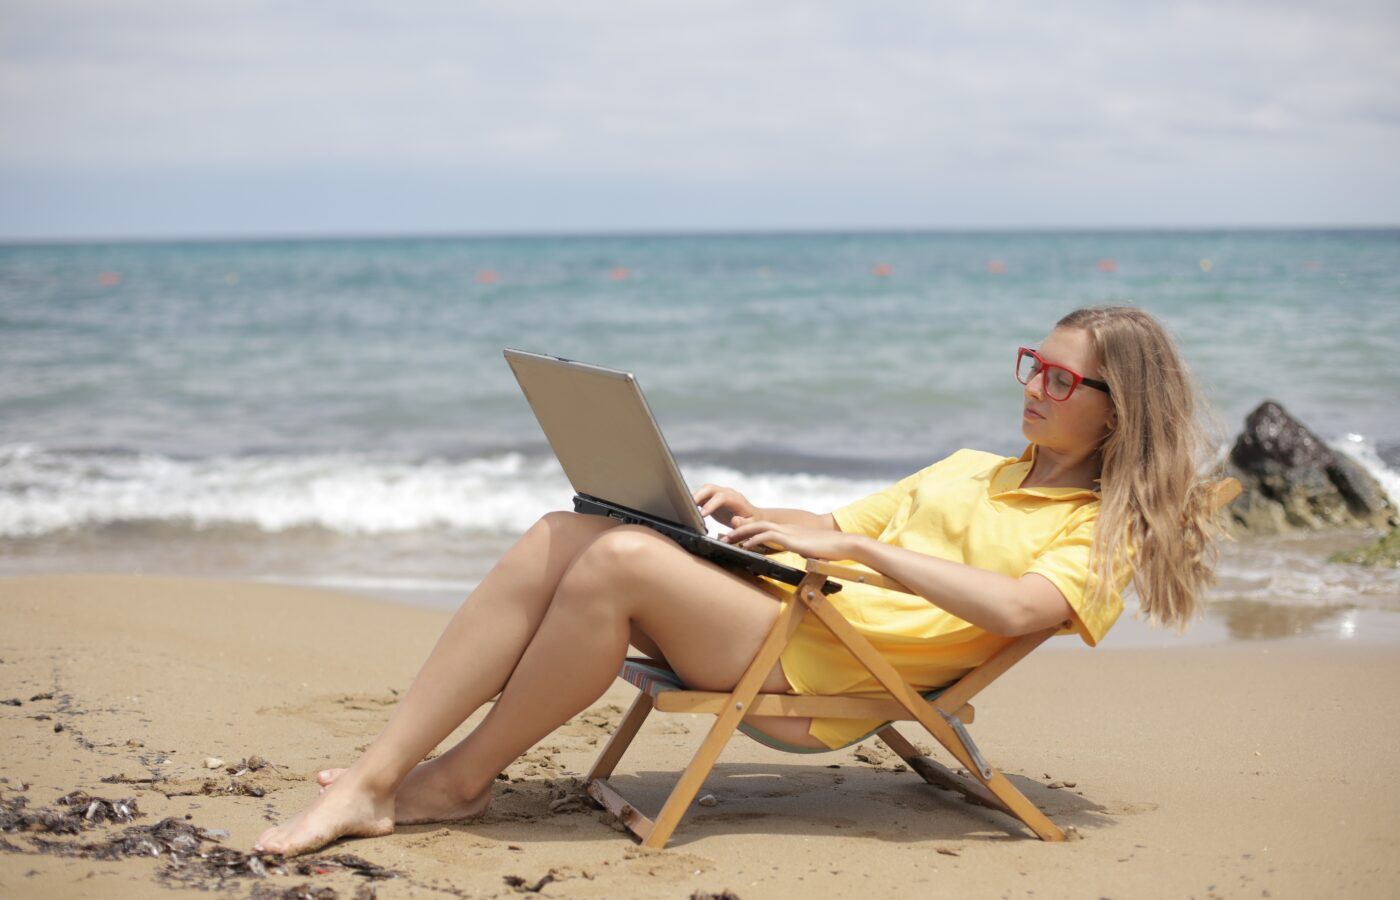 How to automate your e-commerce business - woman working on a laptop in a low deck chair, yellow sun dress, right by the ocean